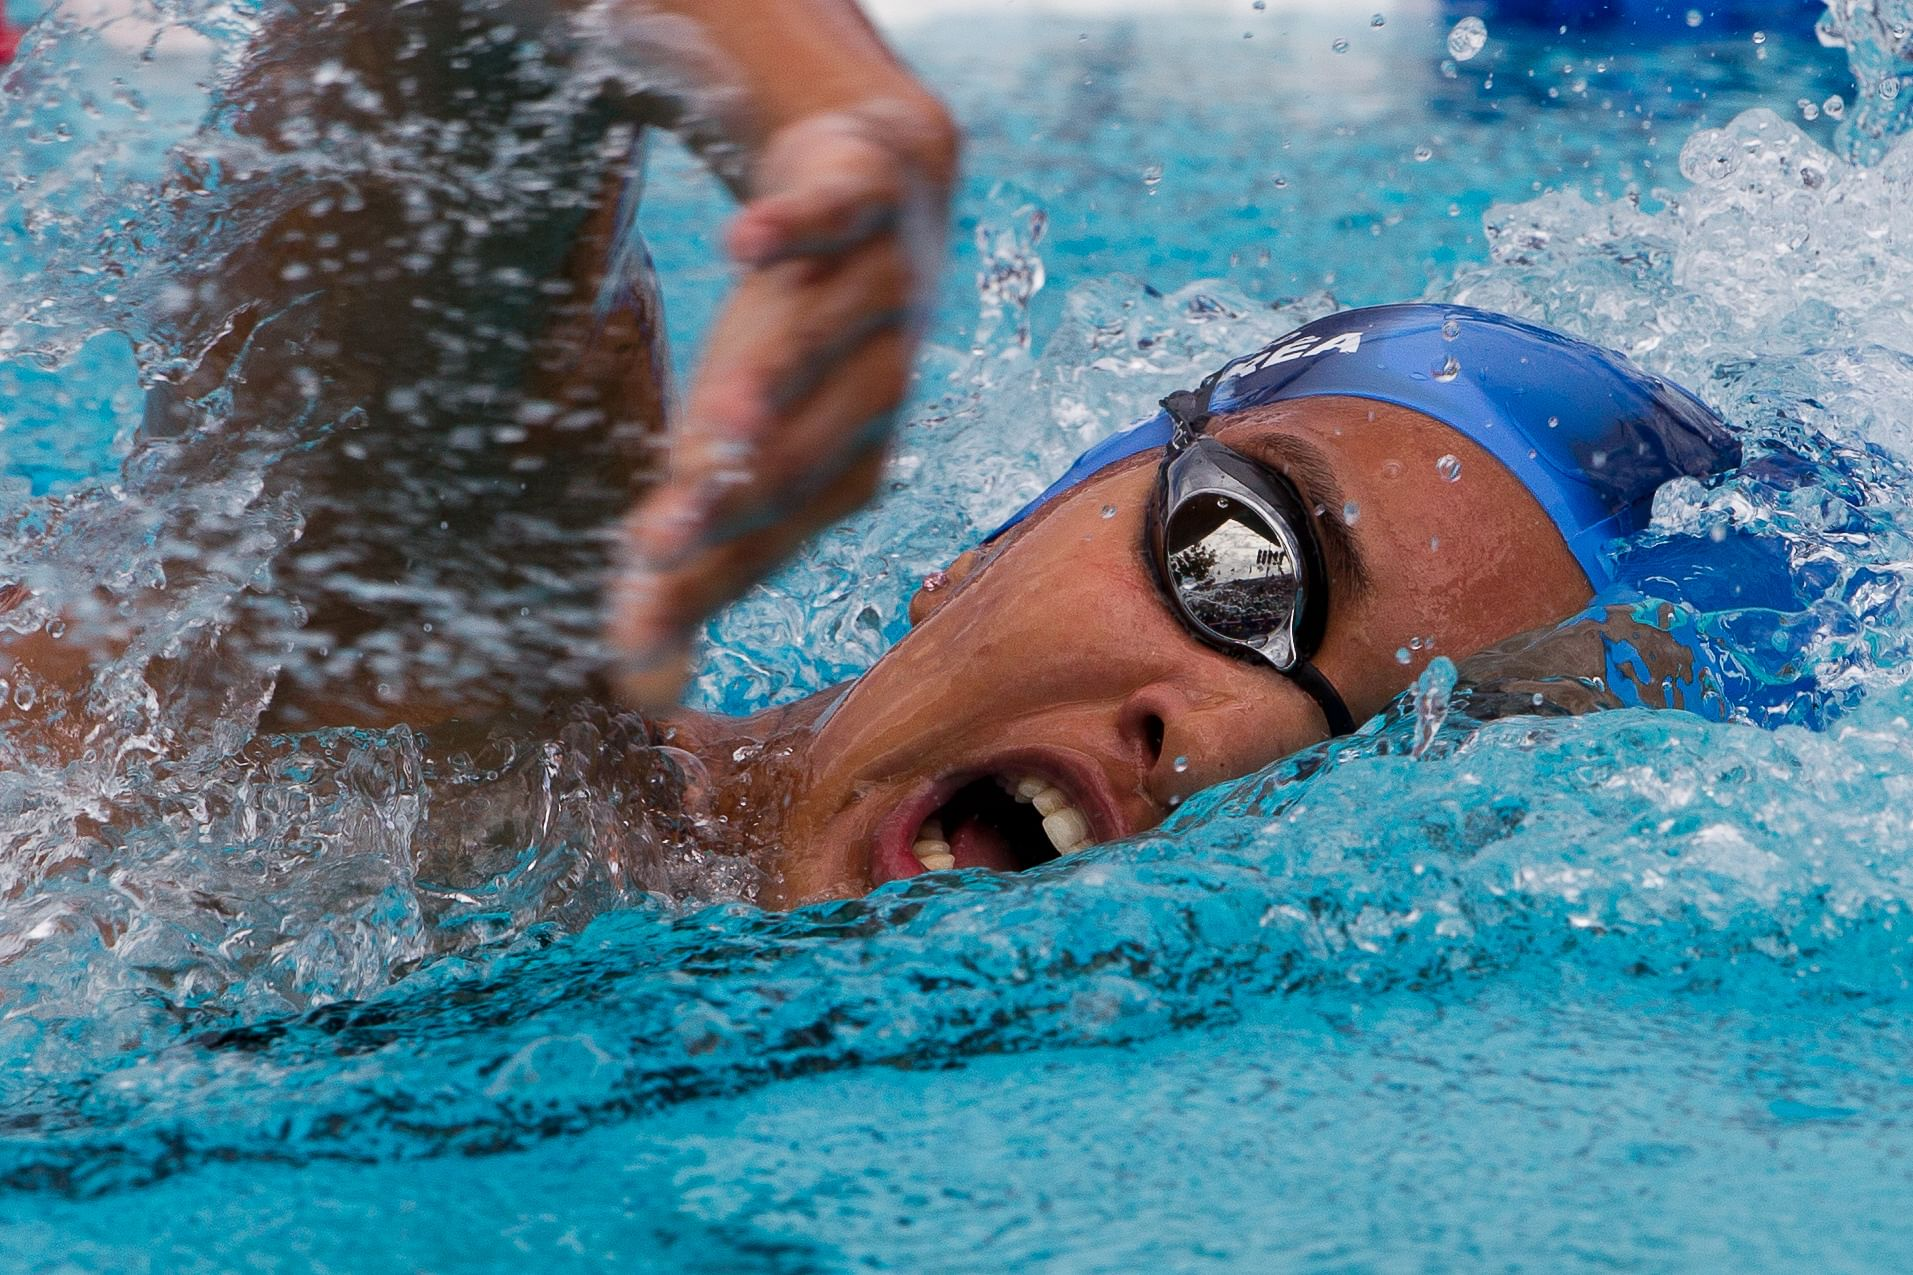 Brazilian swimmer Sarah Correa killed in a hit-and-run accident